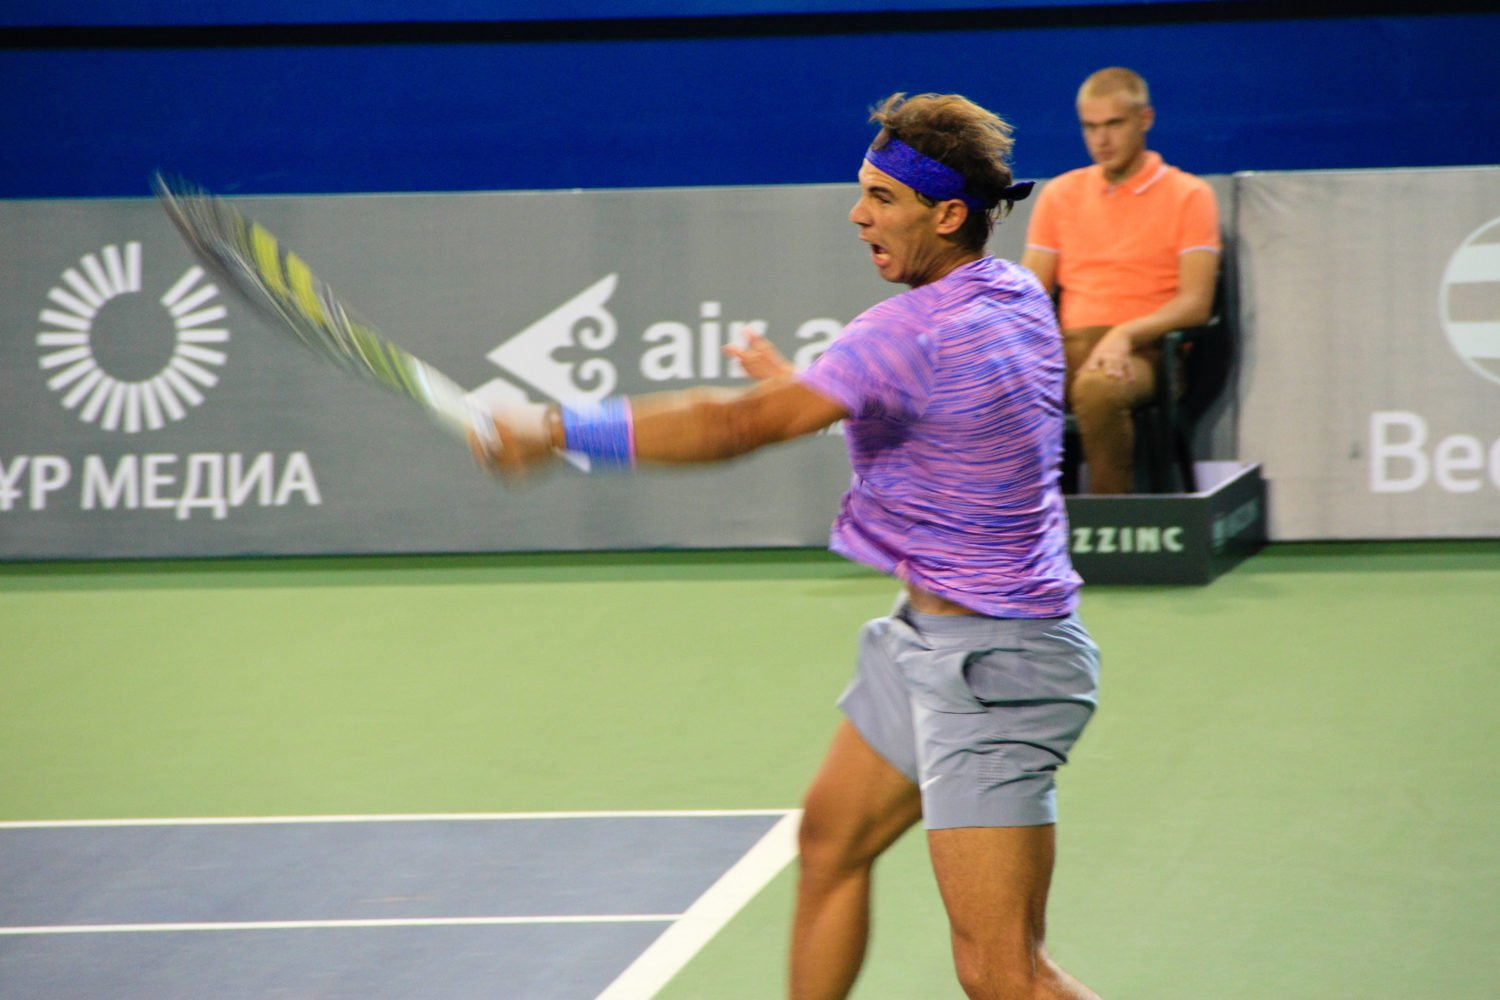 Rafael Nadal will compete at the Citi Open. Photo by Flickr user Tanya Cicconte.